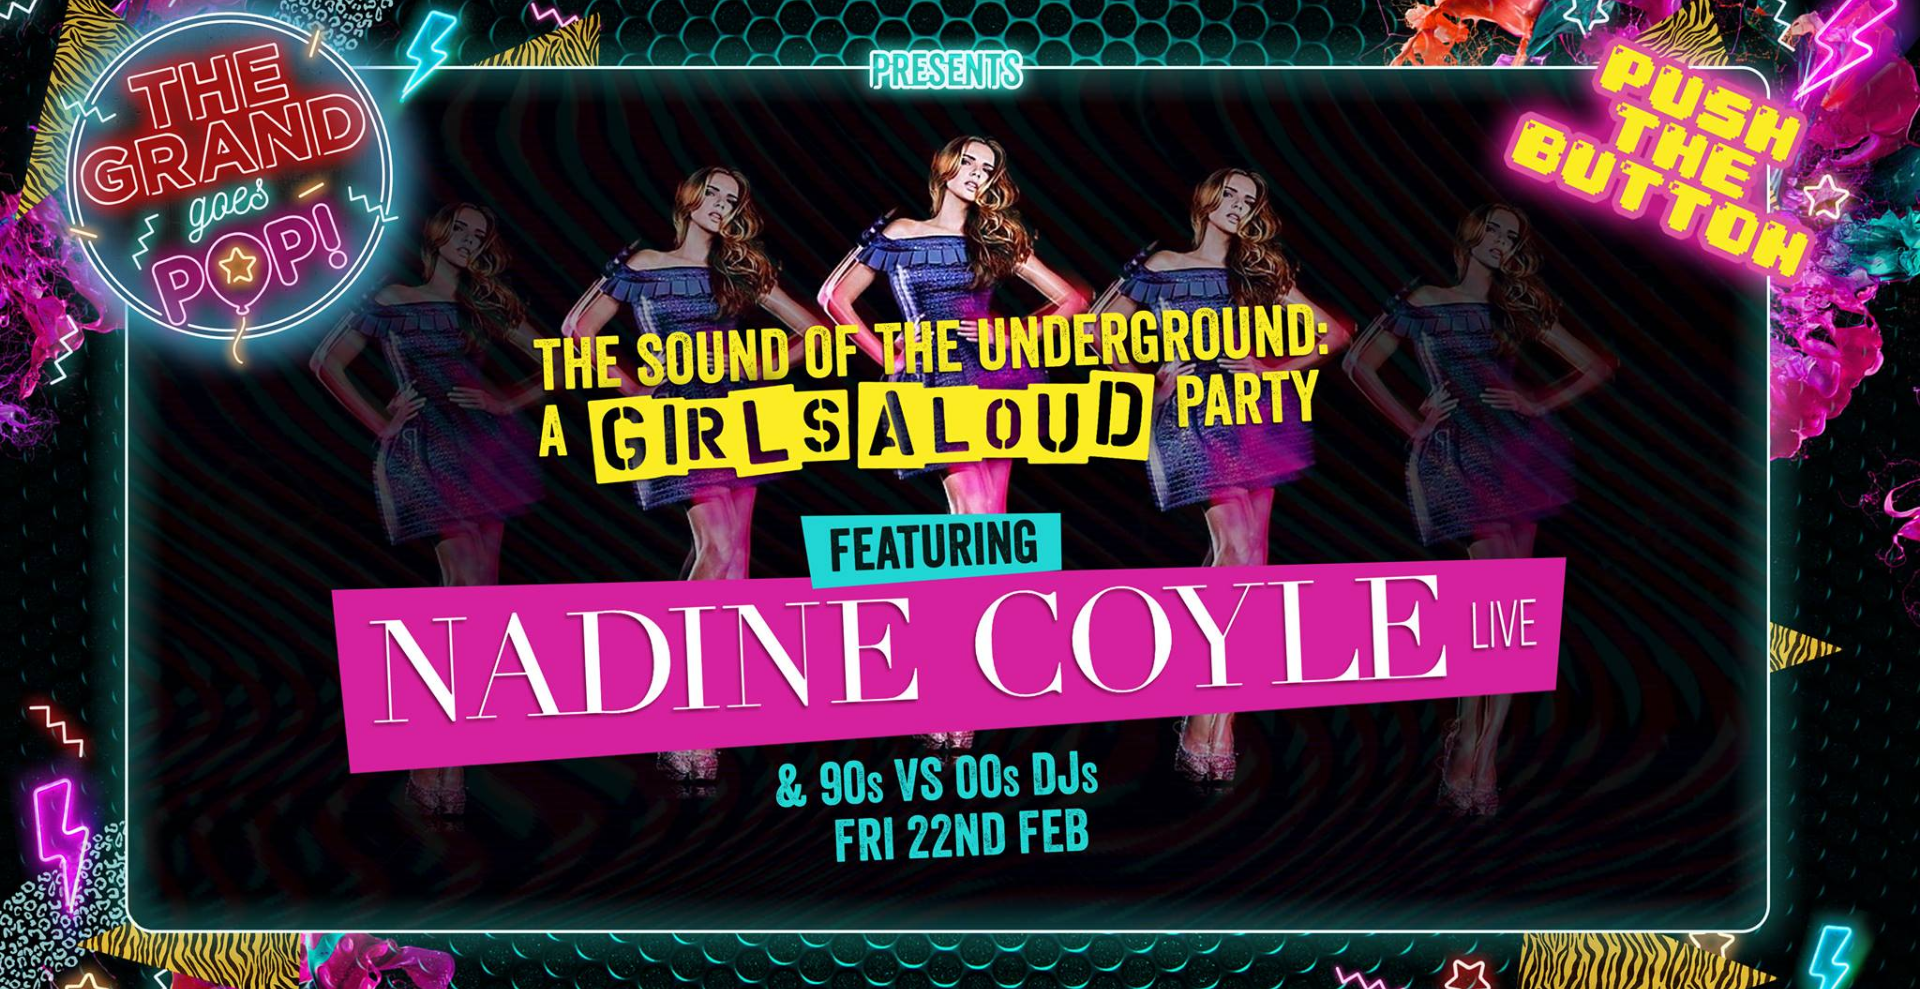 A Girls Aloud Party Feat Nadine Coyle LIVE feat 90's & 00's DJs